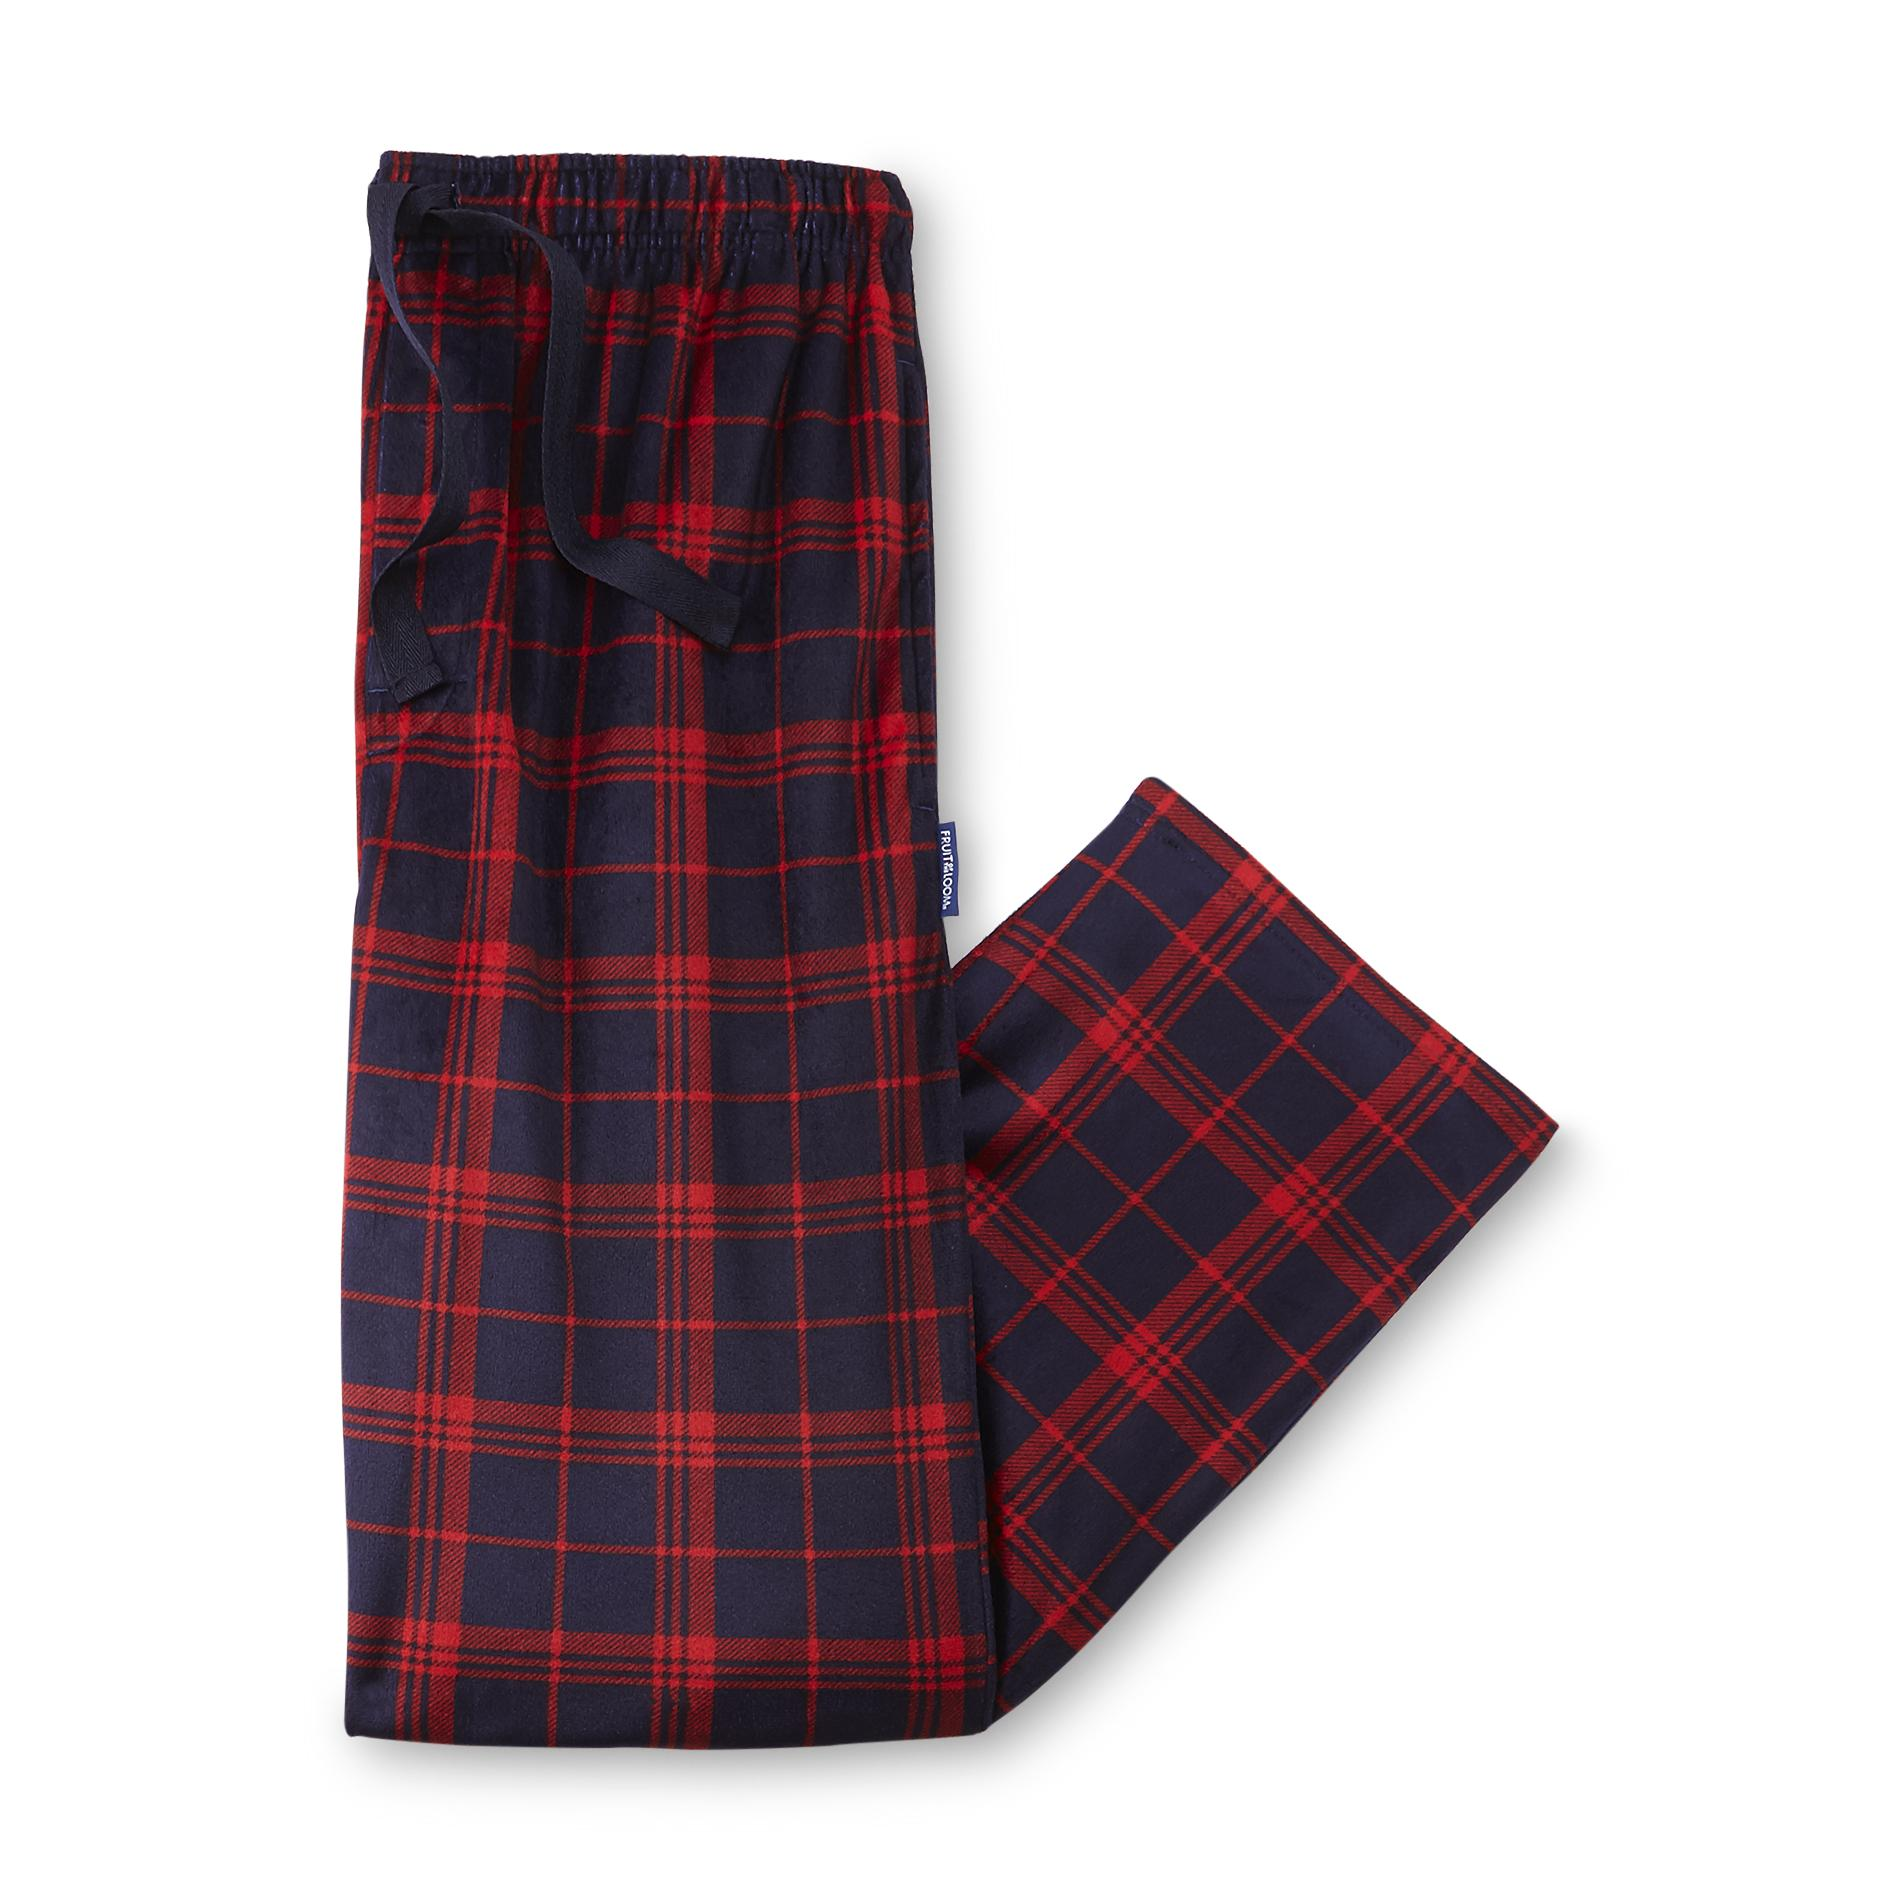 Fruit of the Loom Men's Flannel Pajama Pants - Plaid